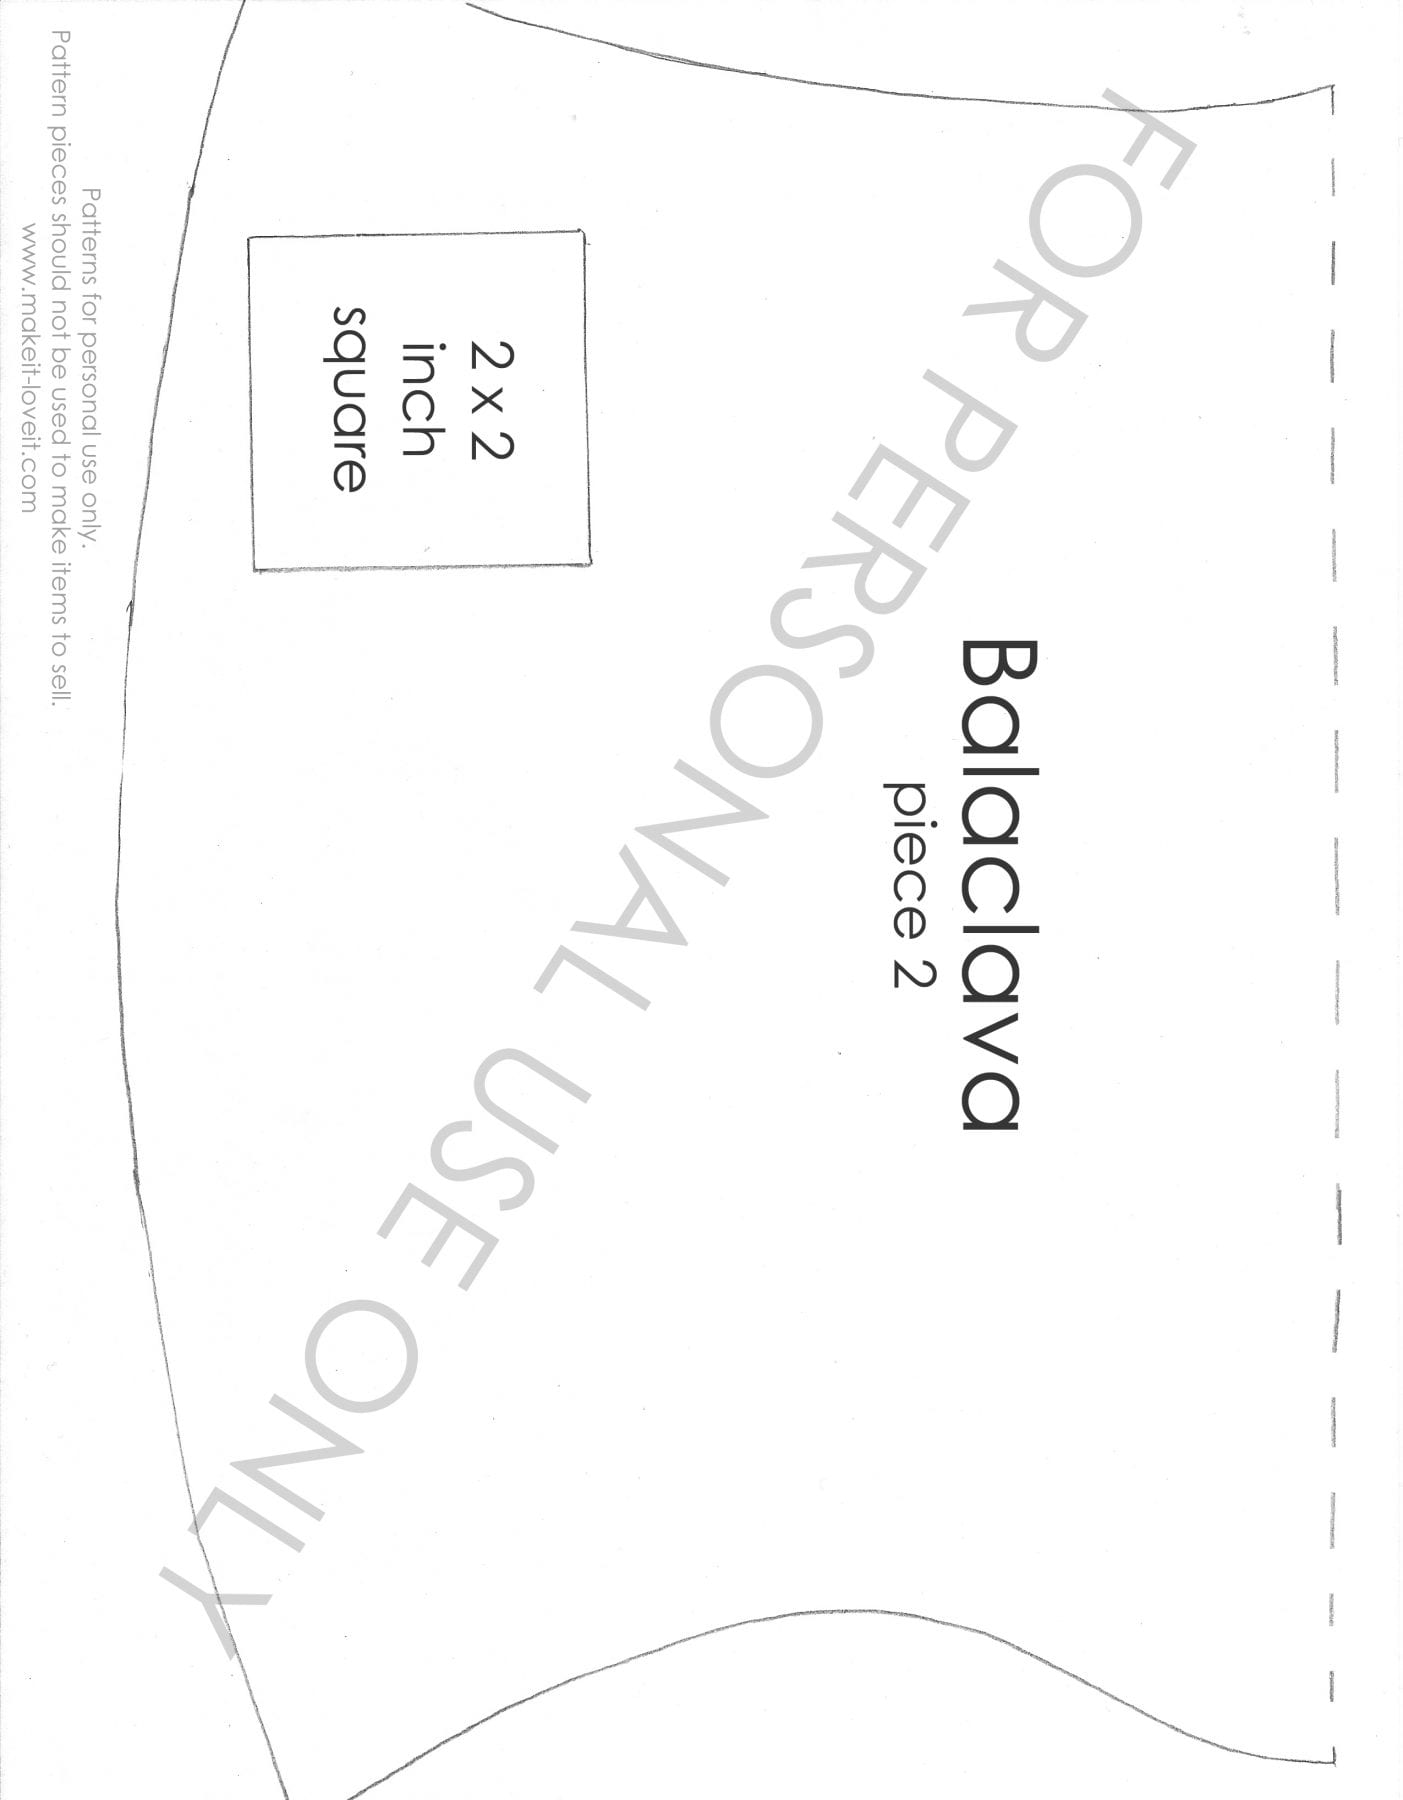 Balaclava21 size shrinking template,shrinking free download card designs on crm access database template free